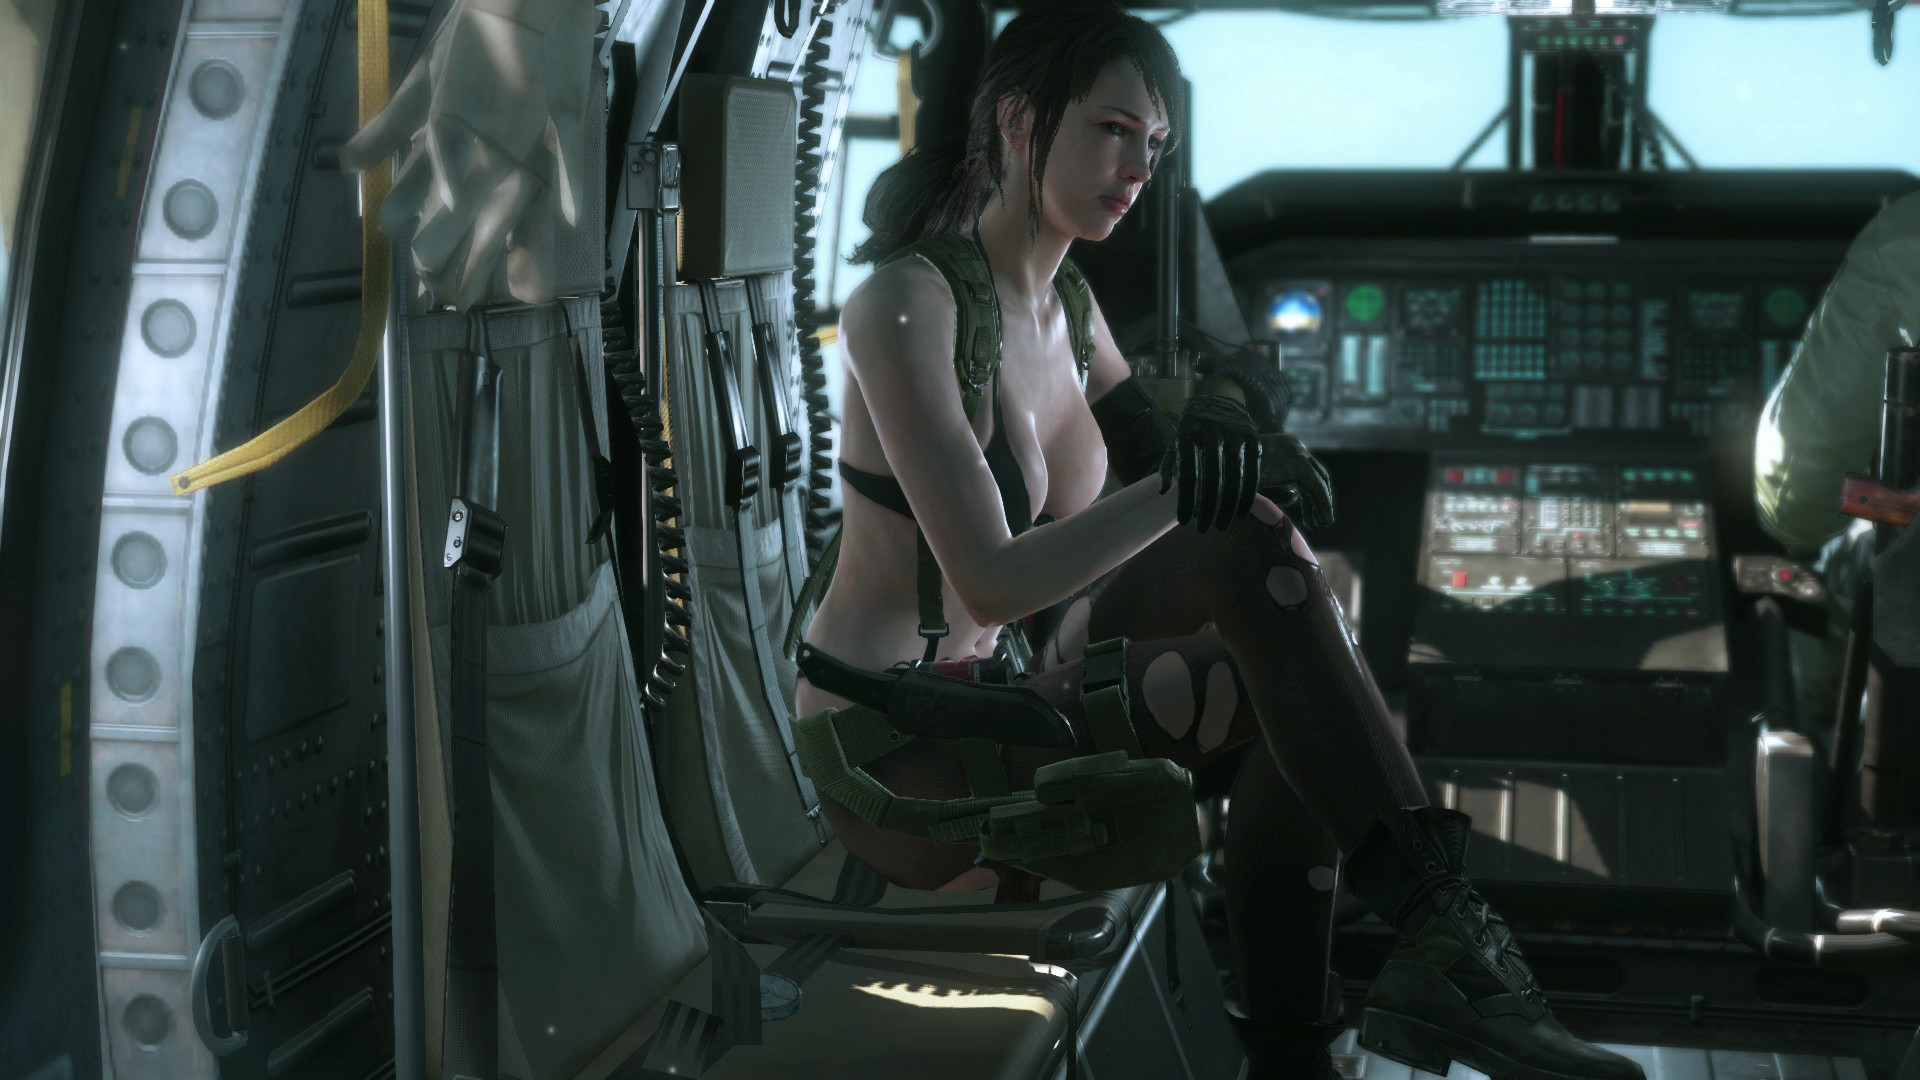 10 Quiet (Metal Gear Solid) HD Wallpapers   Backgrounds – Wallpaper Abyss